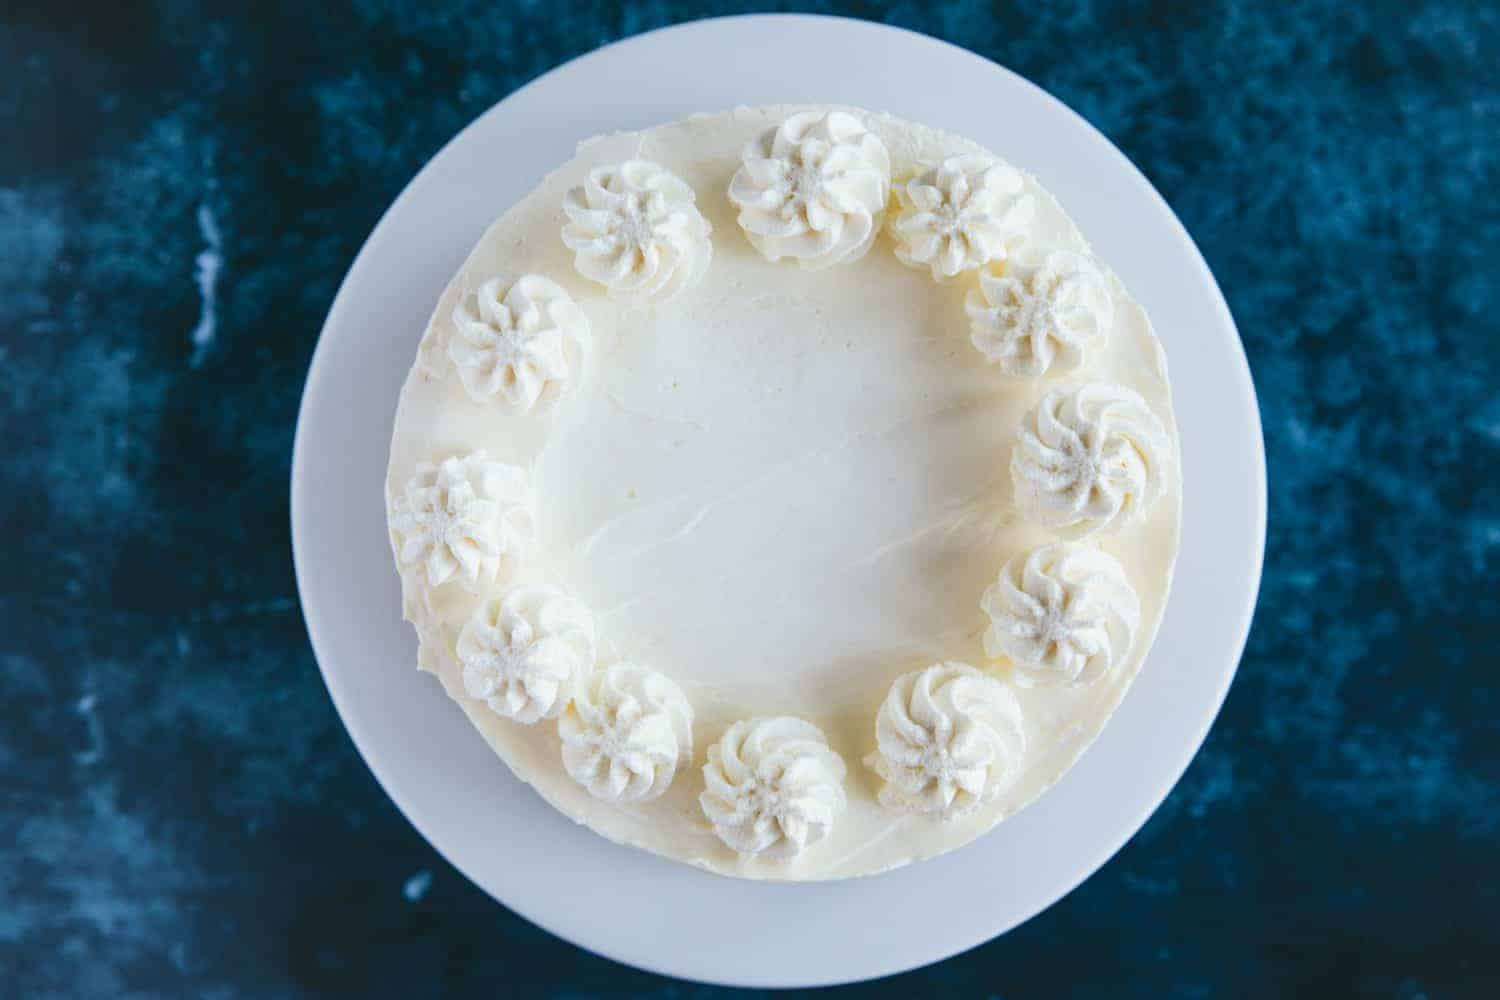 A cheesecake with swirls of piped cream on top.